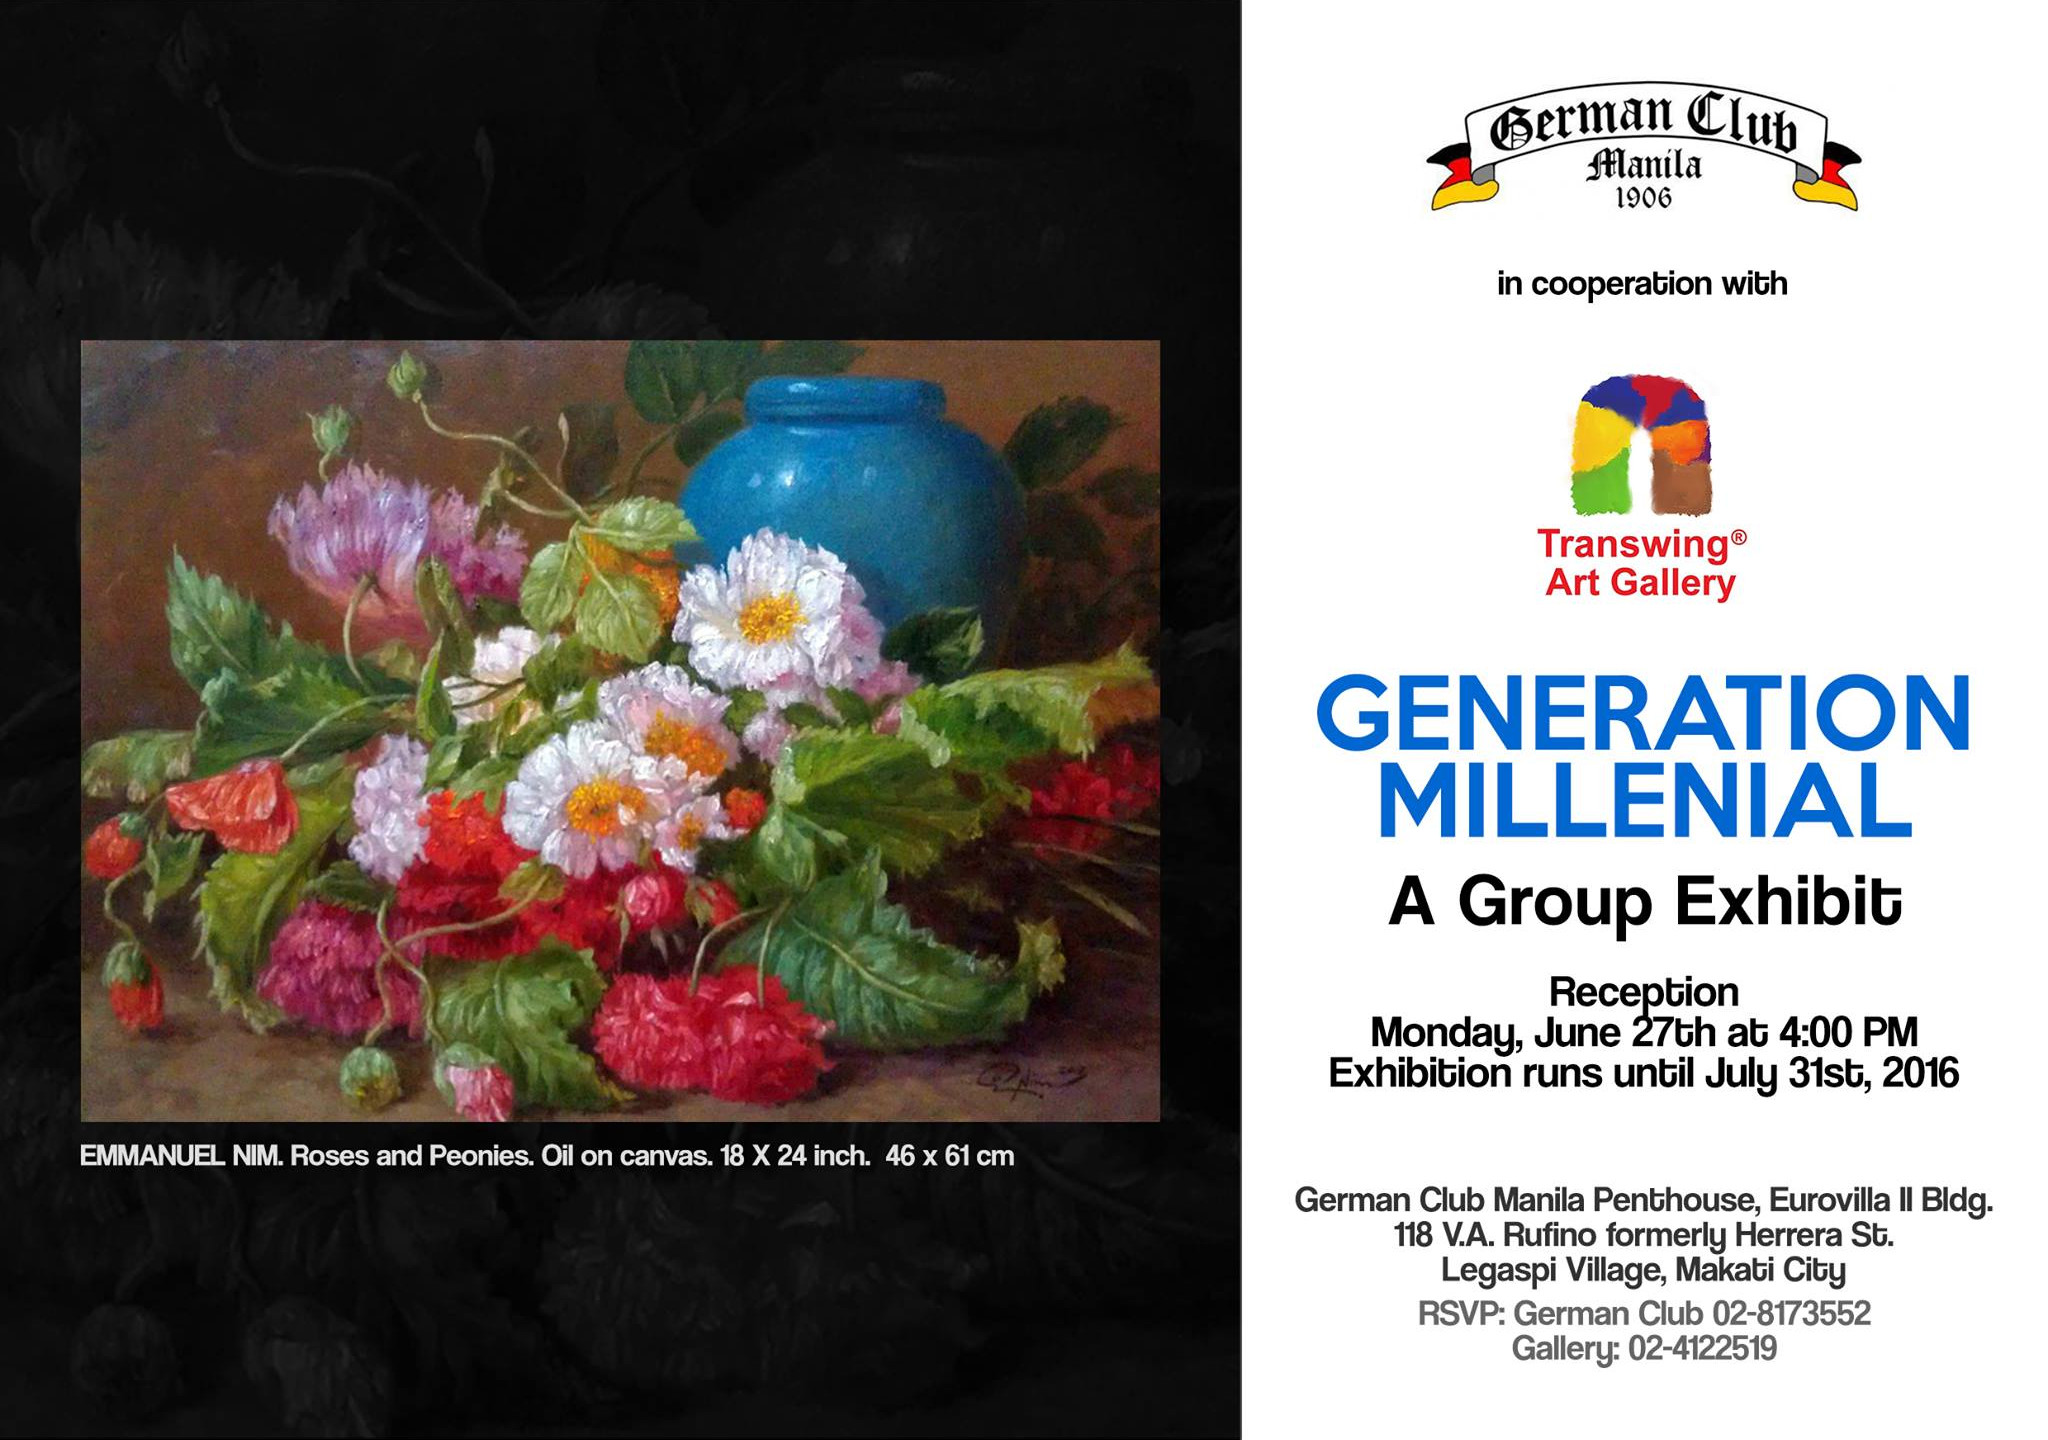 1 GERMAN CLUB INVITATION - GENERATION MILLENIAL